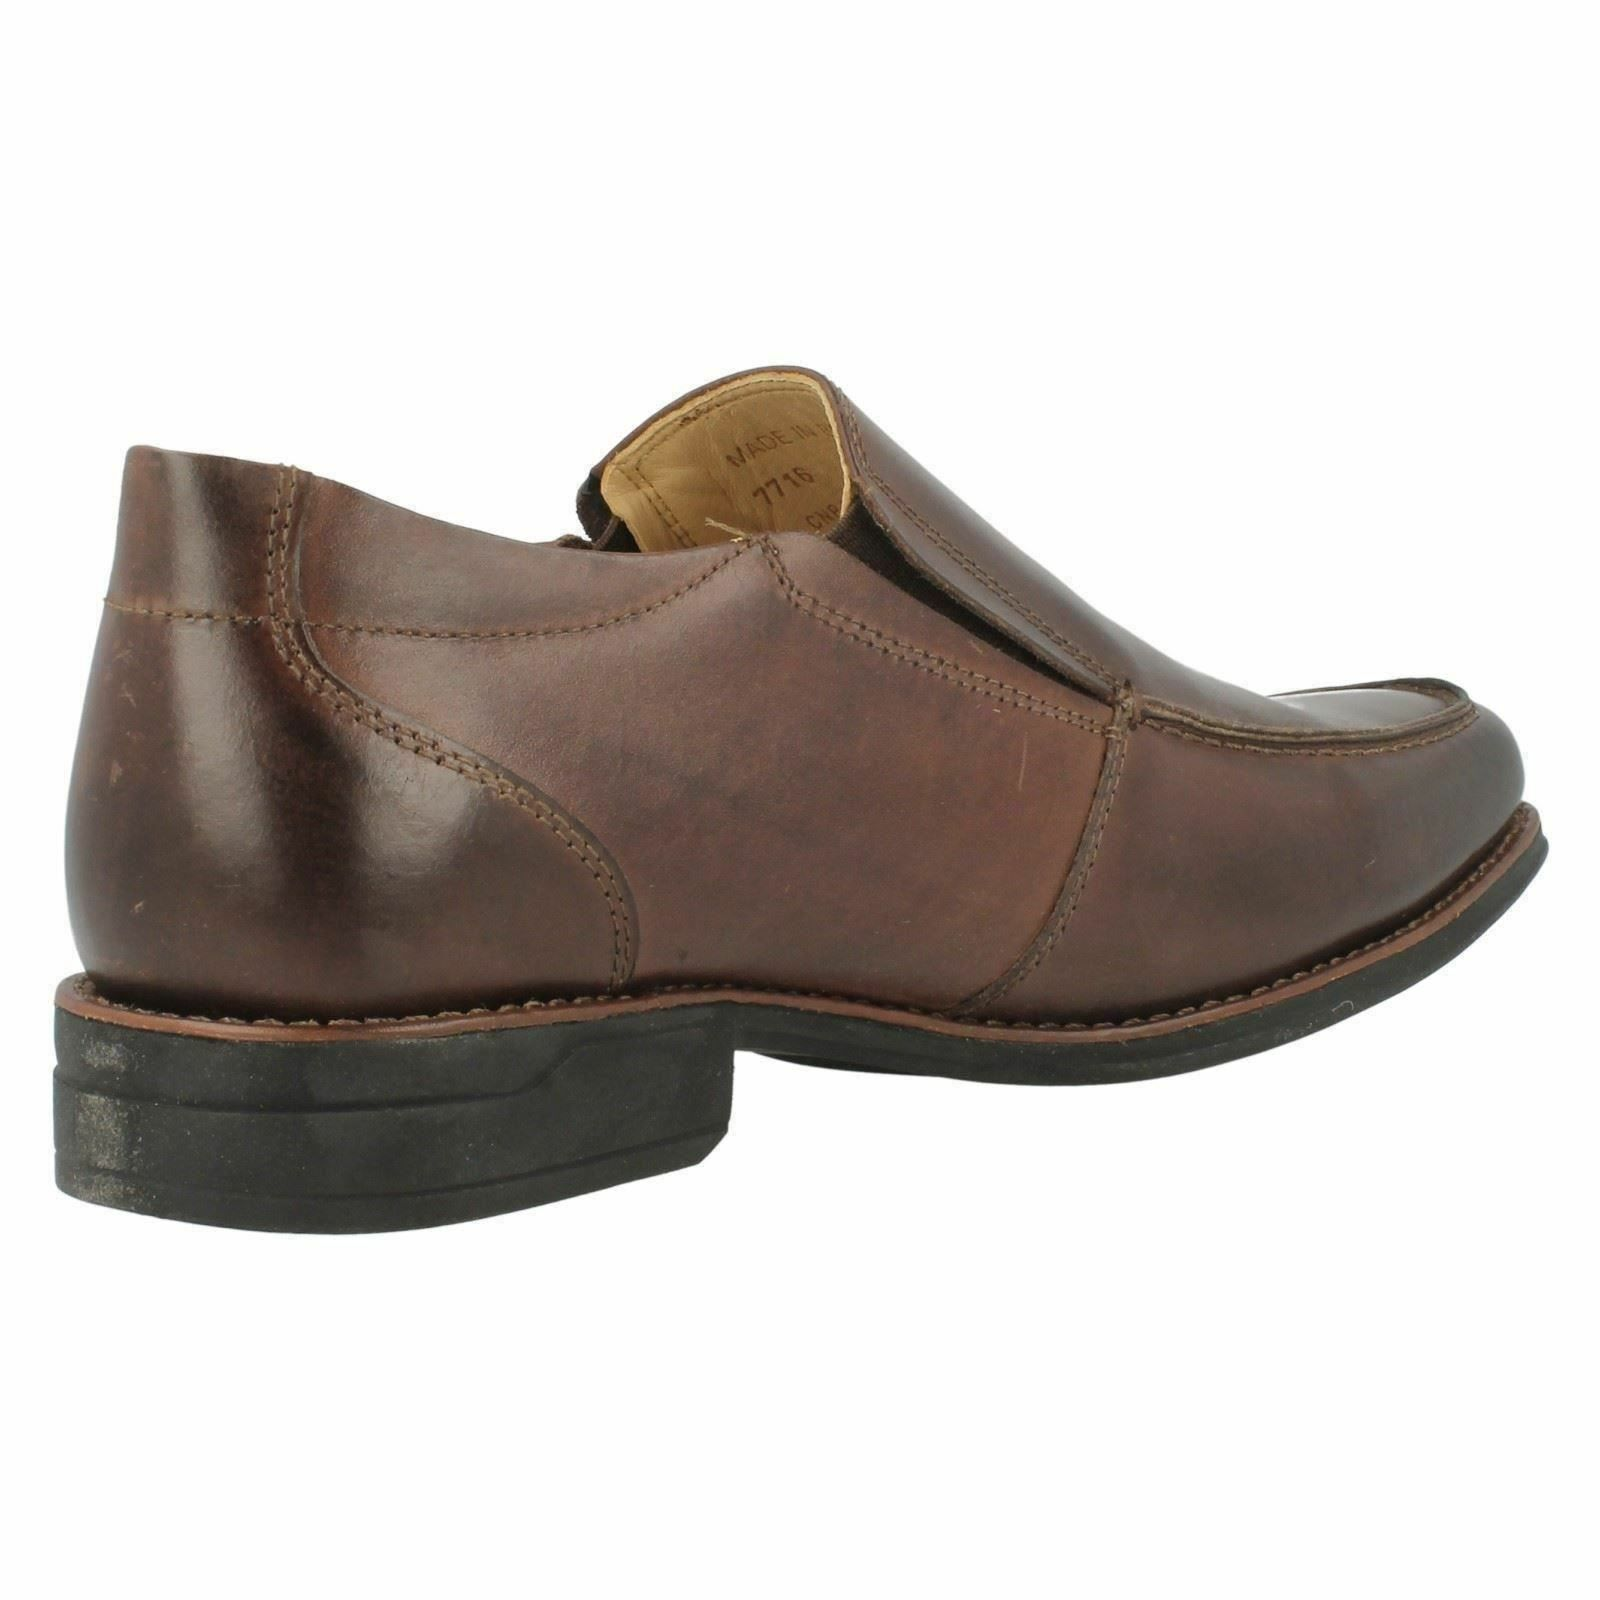 Anatomic & Uomo Co TAPERA 777716  Uomo & Coffee Touch Loafers Schuhes (GO) (Kett) 6cc397